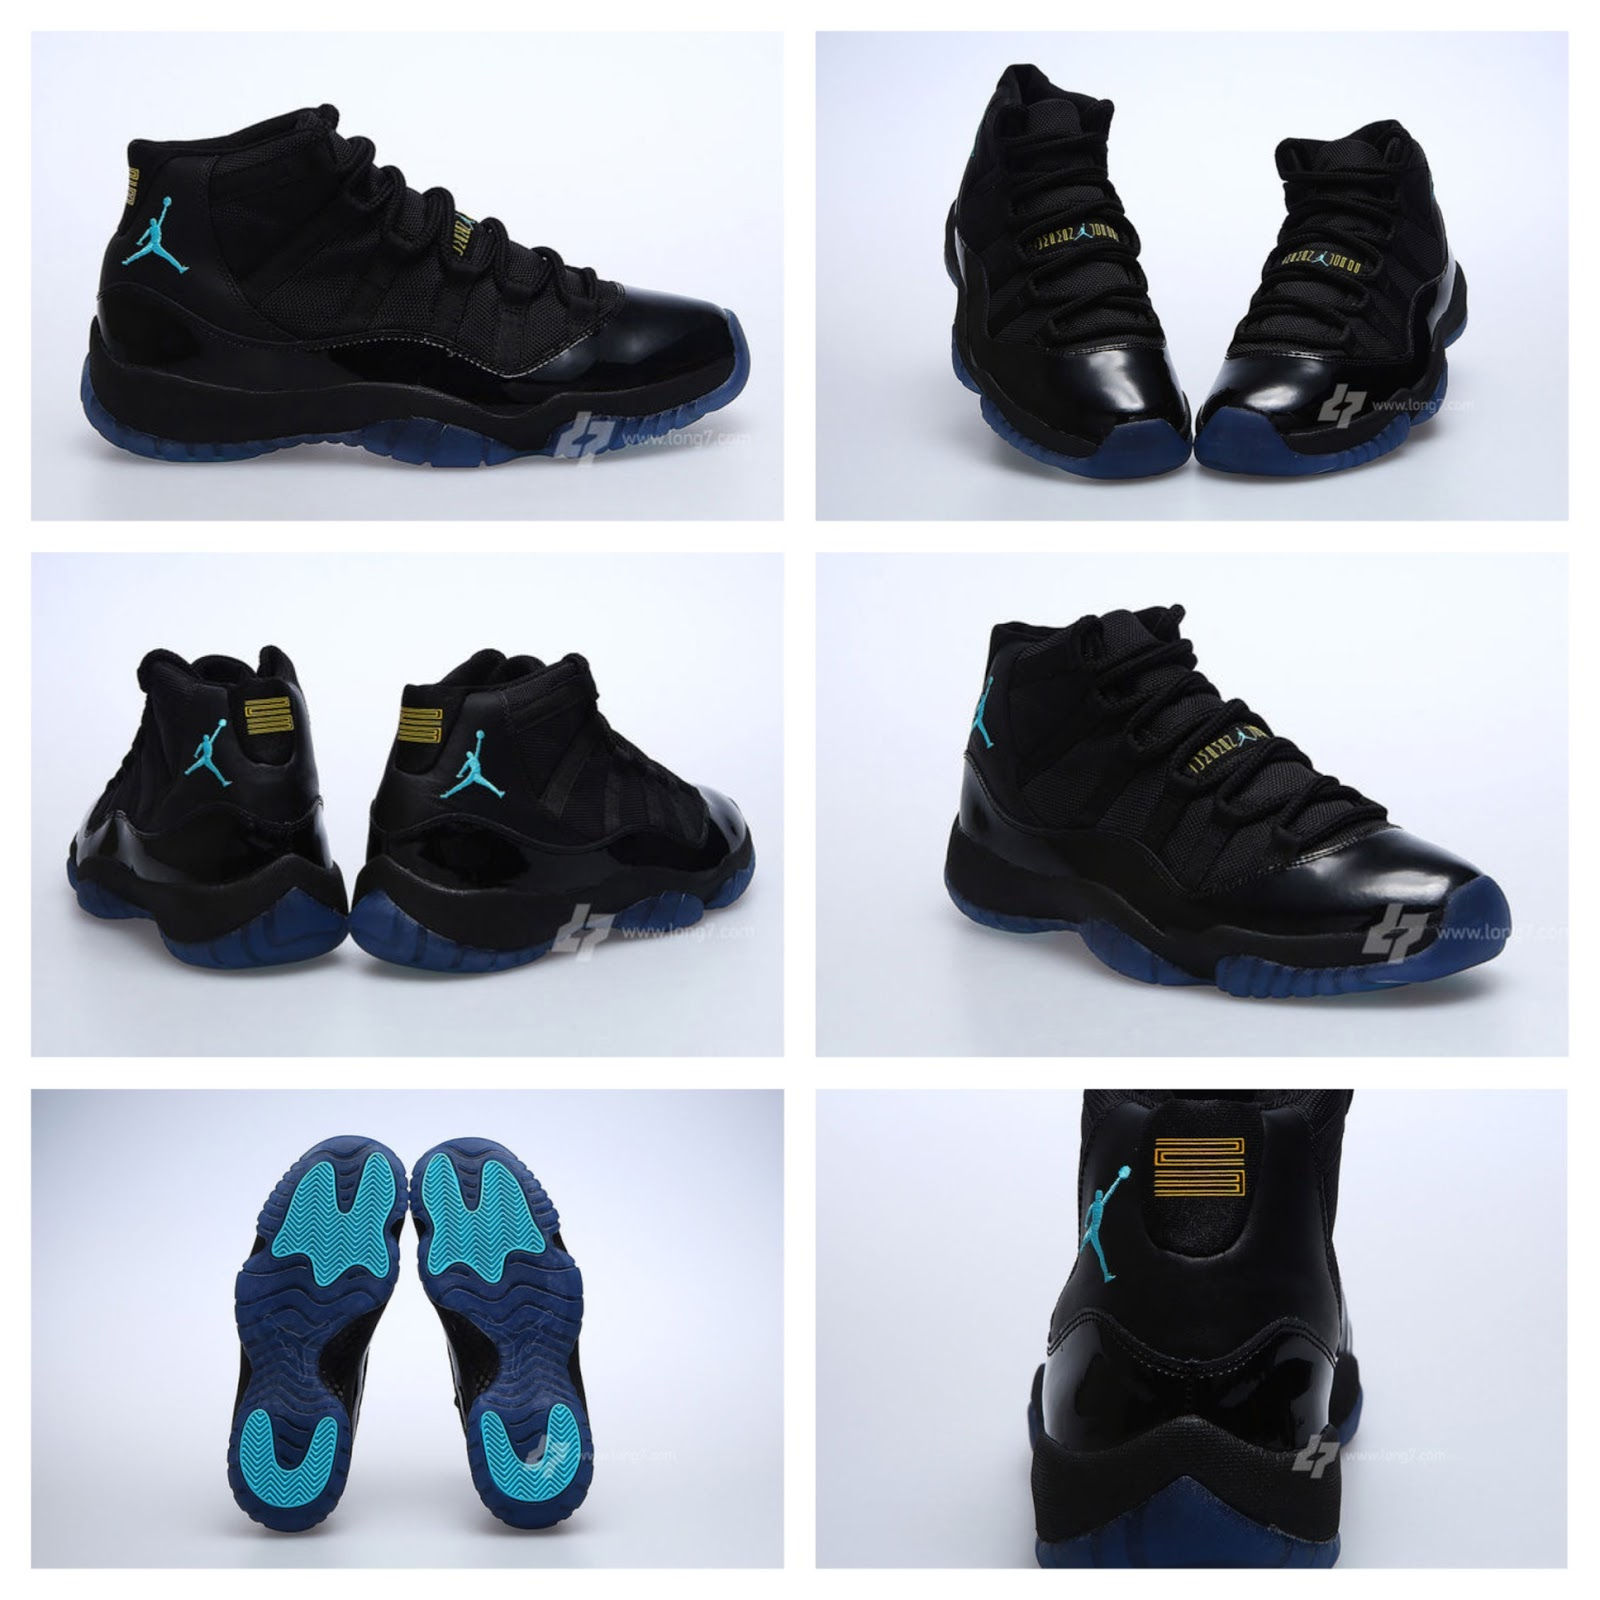 retro 11 gamma blue fake vs real diamond